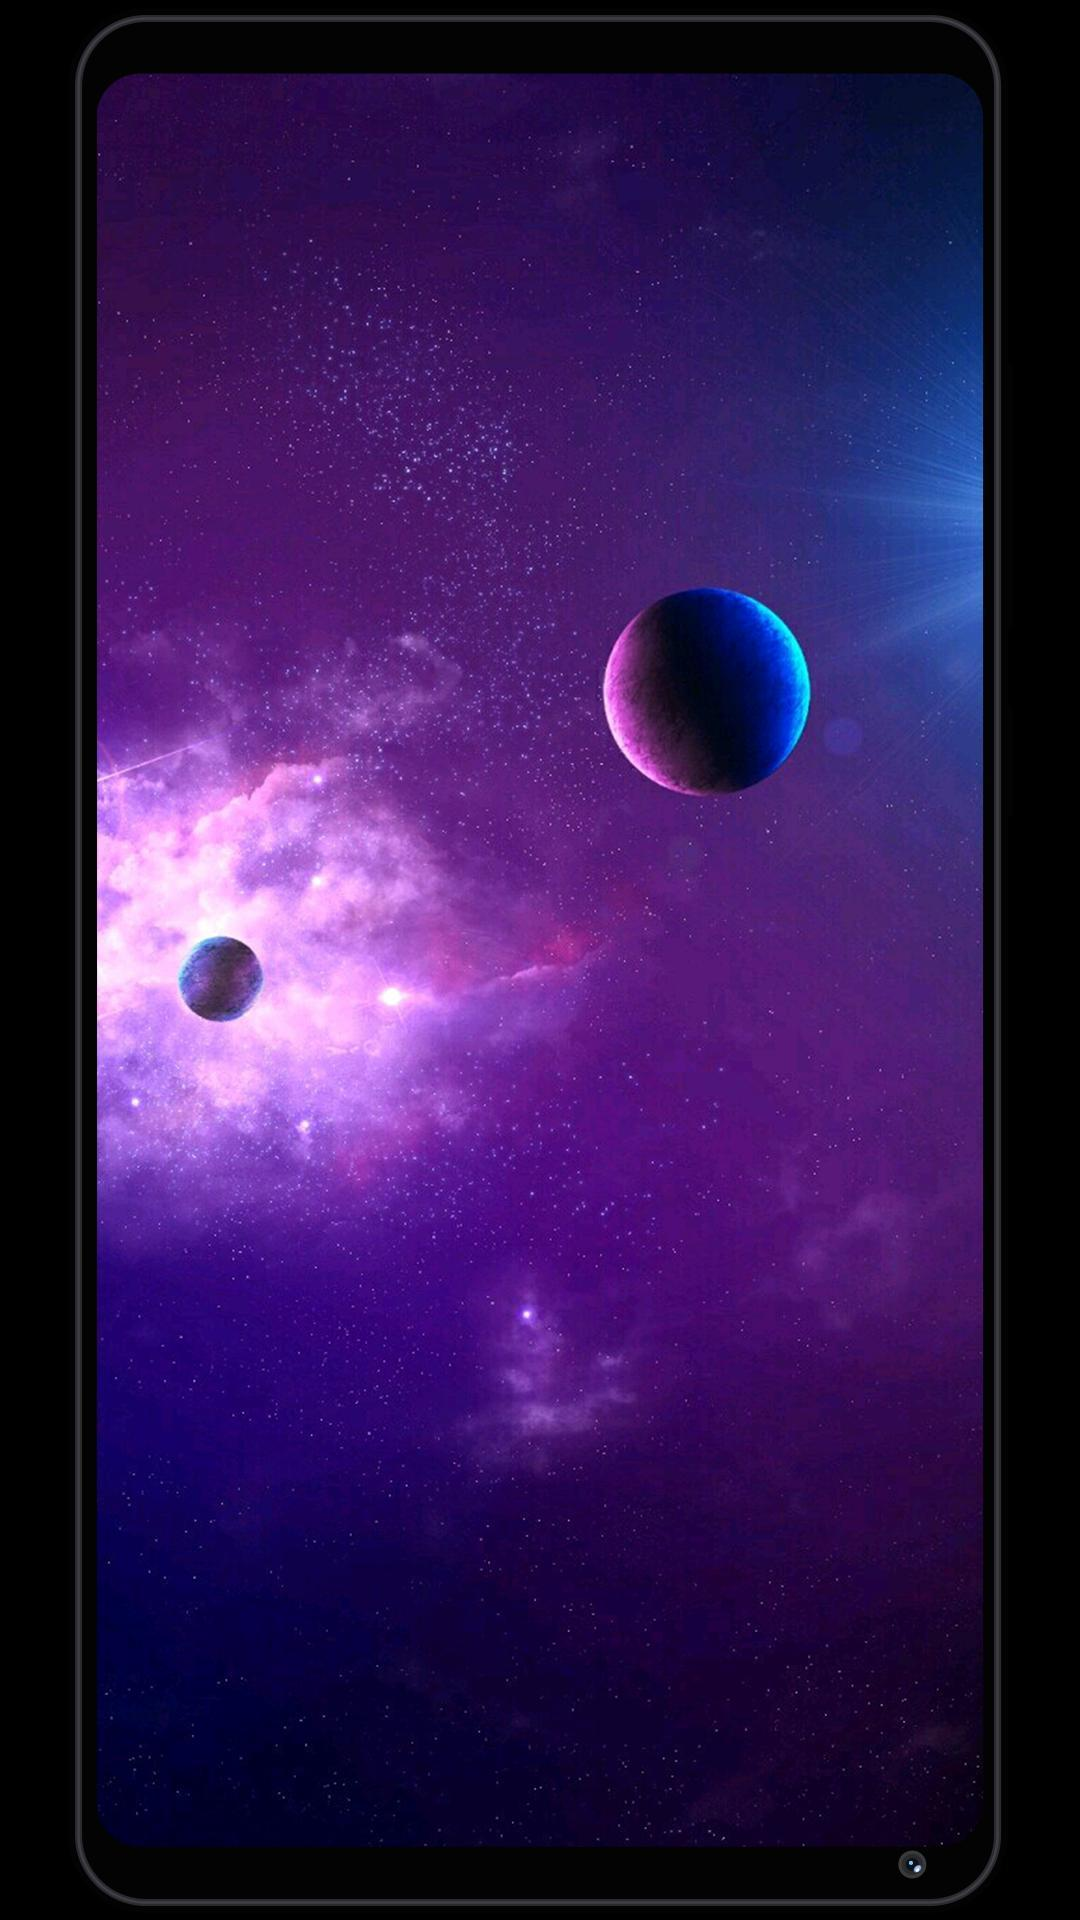 Space Android Wallpapers - Wallpaper Cave